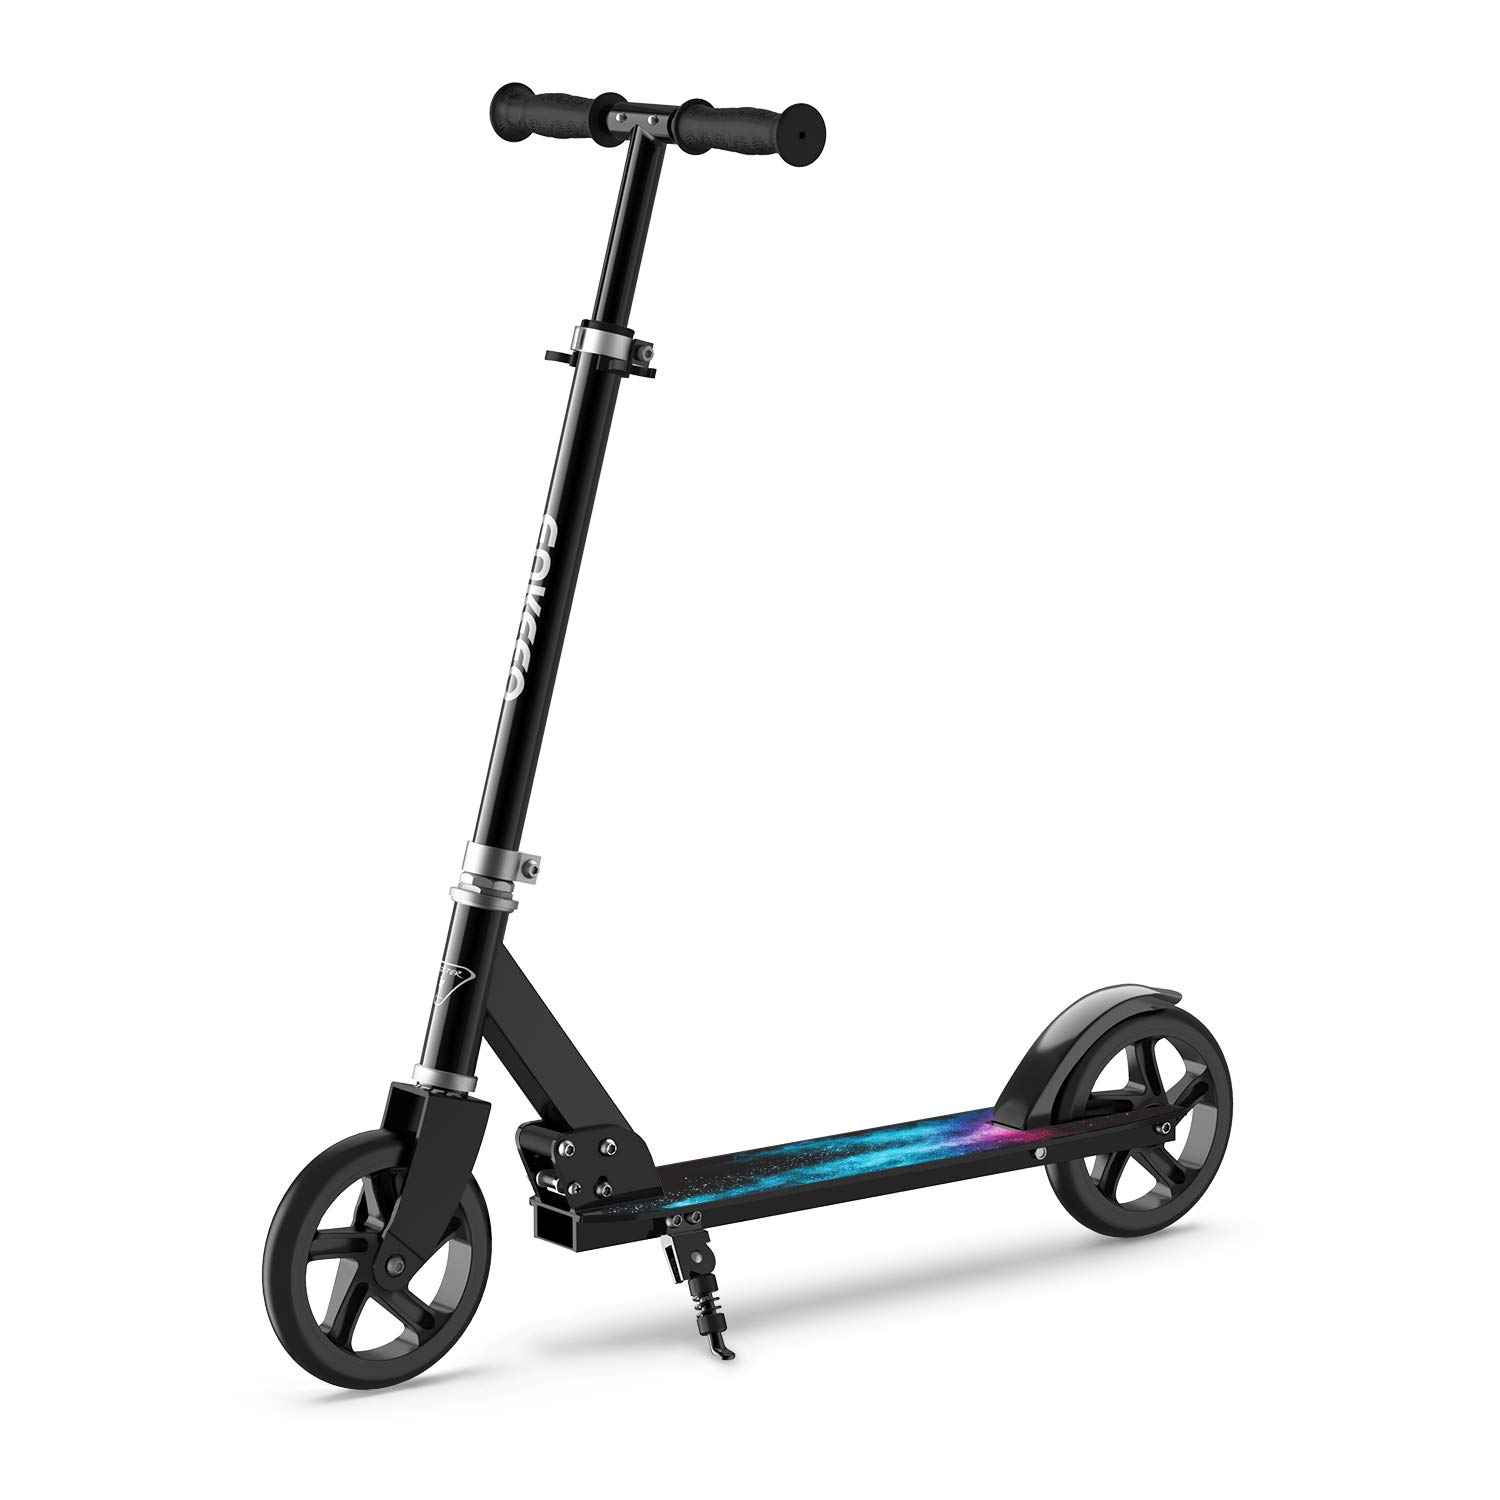 ENKEEO Kick Scooter with 220 lbs Capacity, Height Adjustable Handlebar and Oversized Wheels, Smart Brake System, Foldable Commuter Scooter for Kids, Adult (Black)